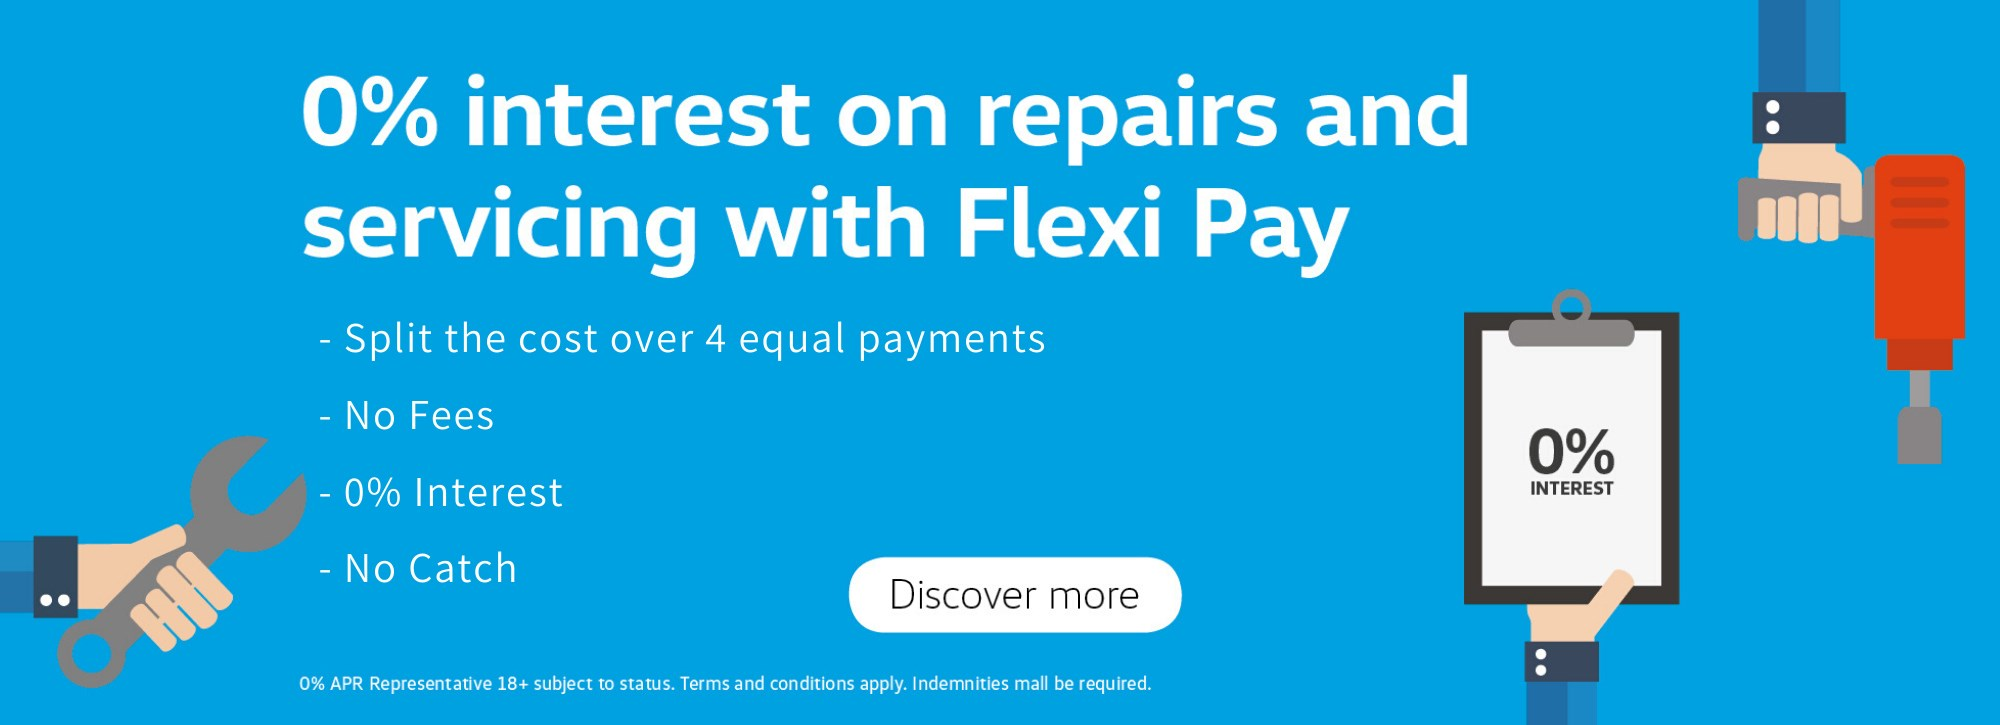 0% interest on repairs and servicing